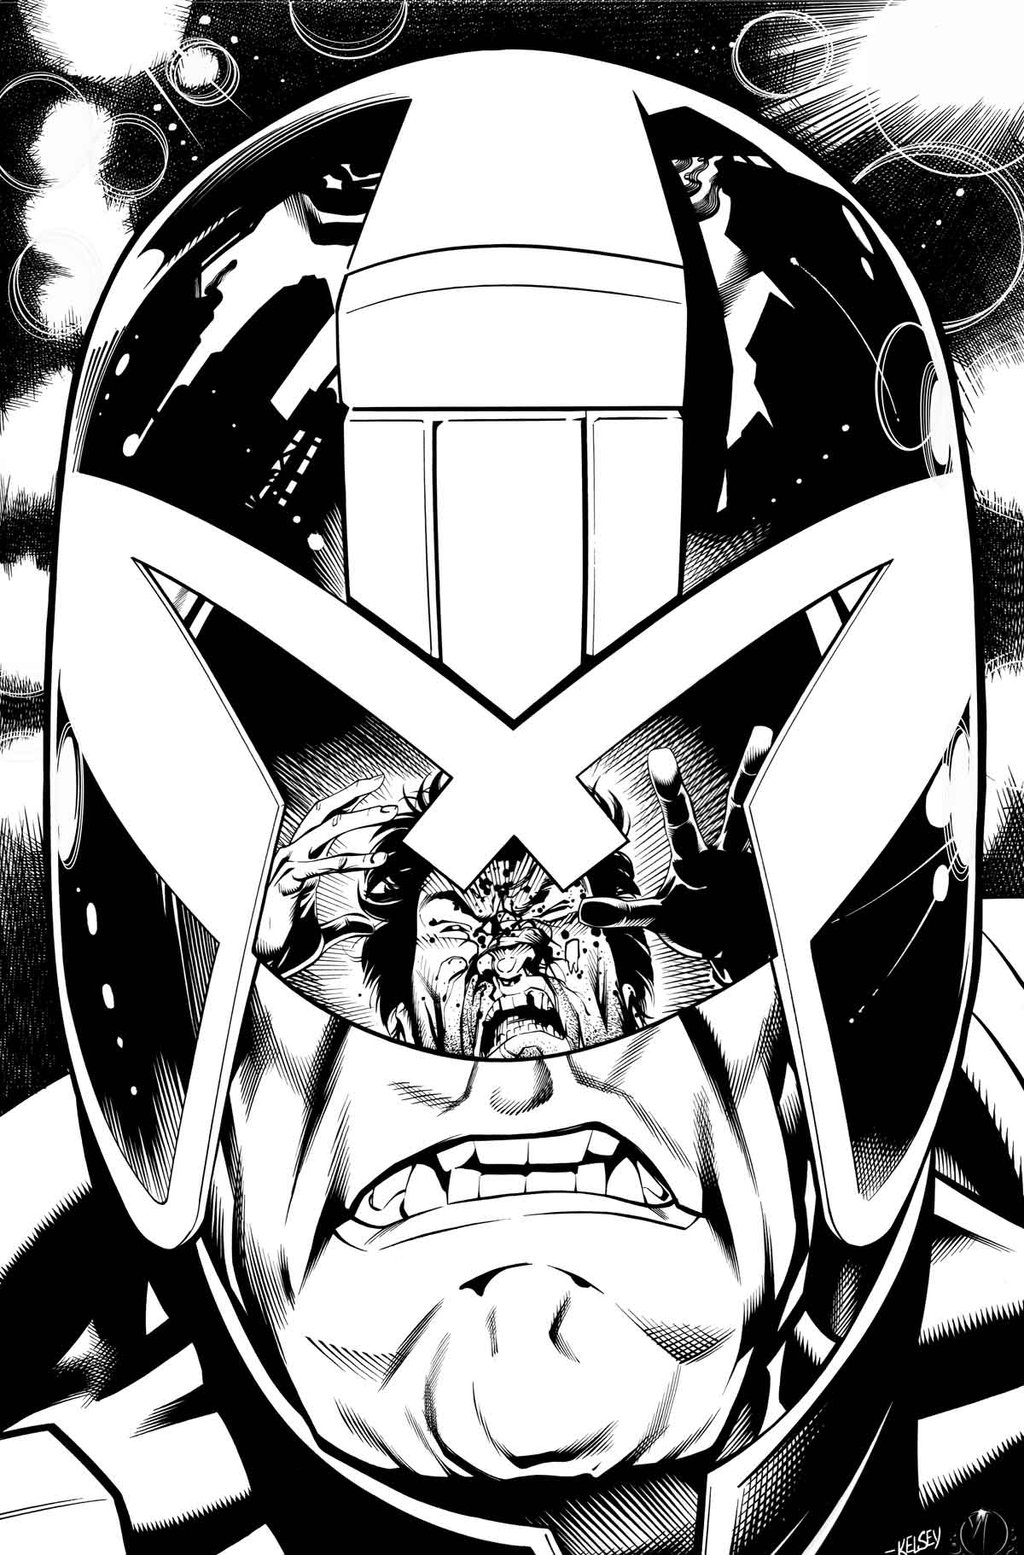 Judge Dredd - Inked by Deering over Kelsey Shannon (and is one of Adrian's favorite pieces by Marc EVER).